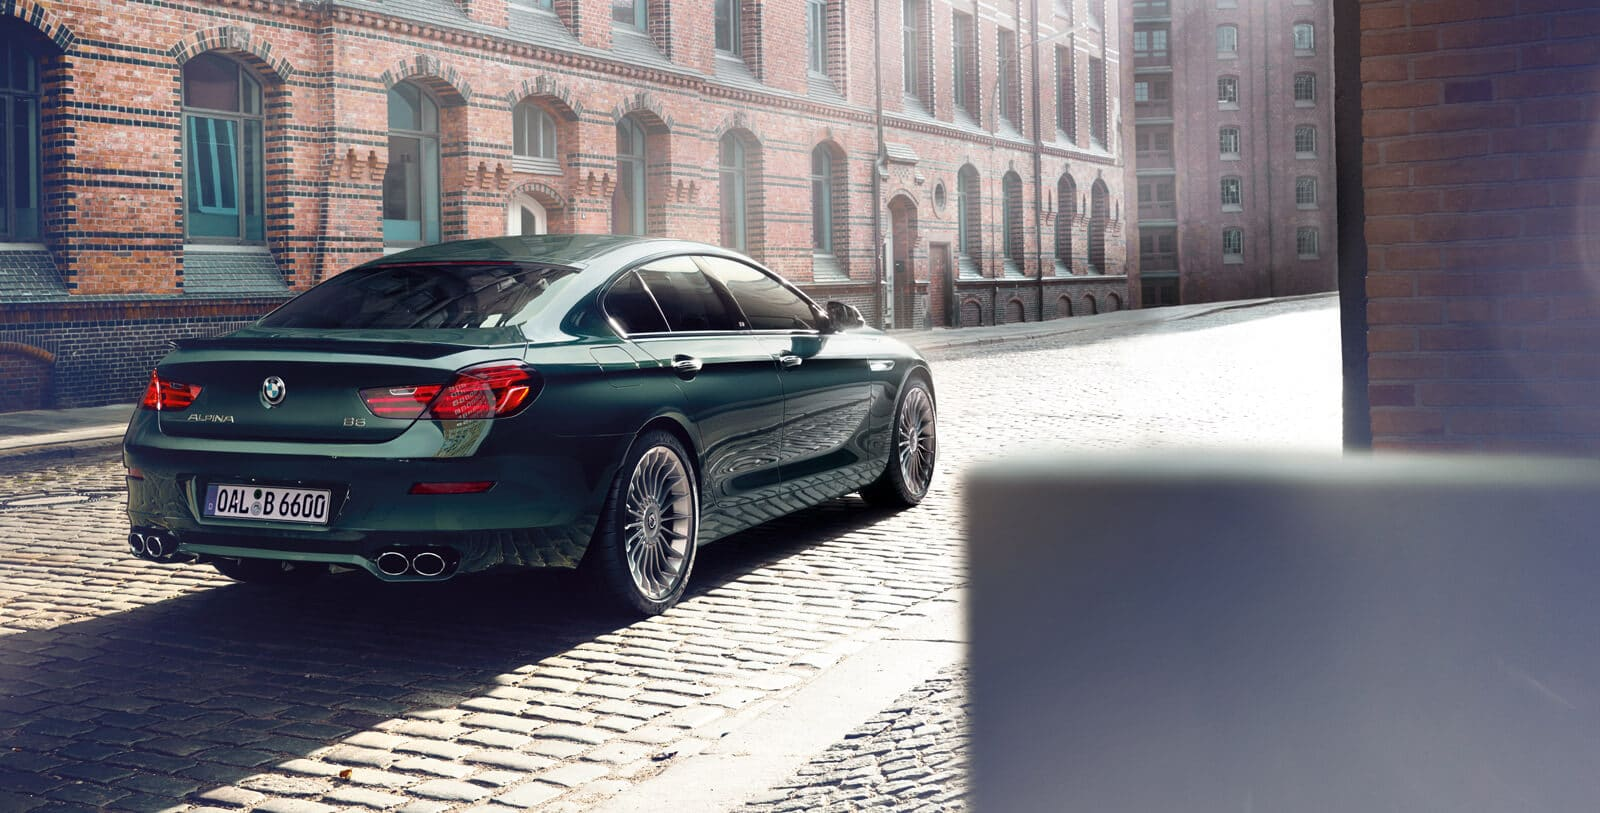 2019 BMW 640i Rear Green Exterior